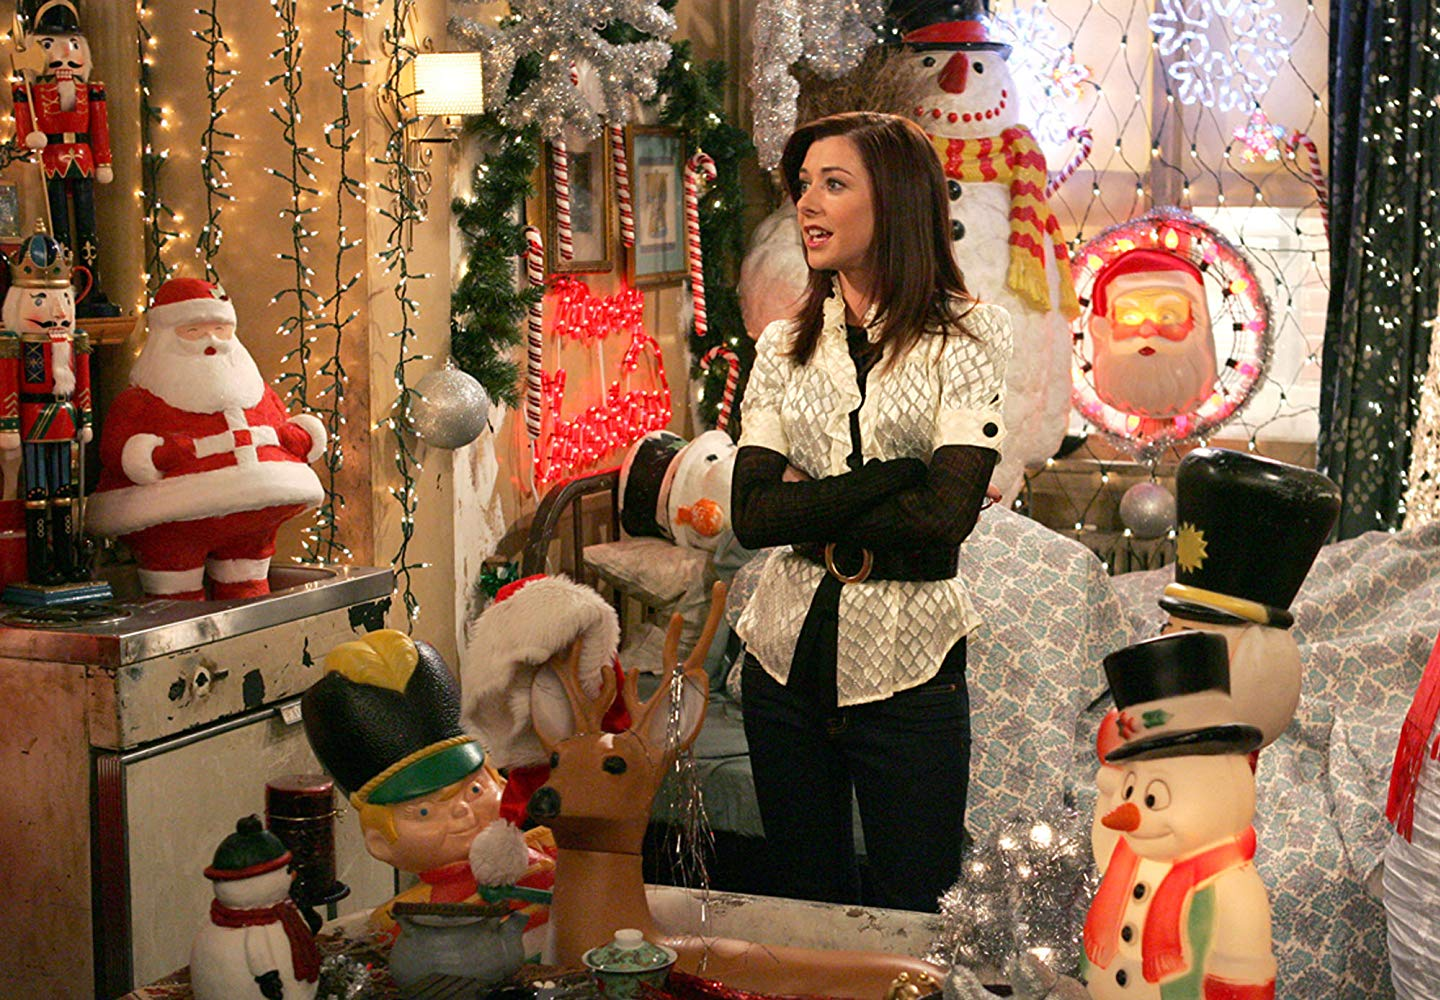 In sitcom How I Met Your Mother, Lily stands in her apartment surrounded by Christmas decorations